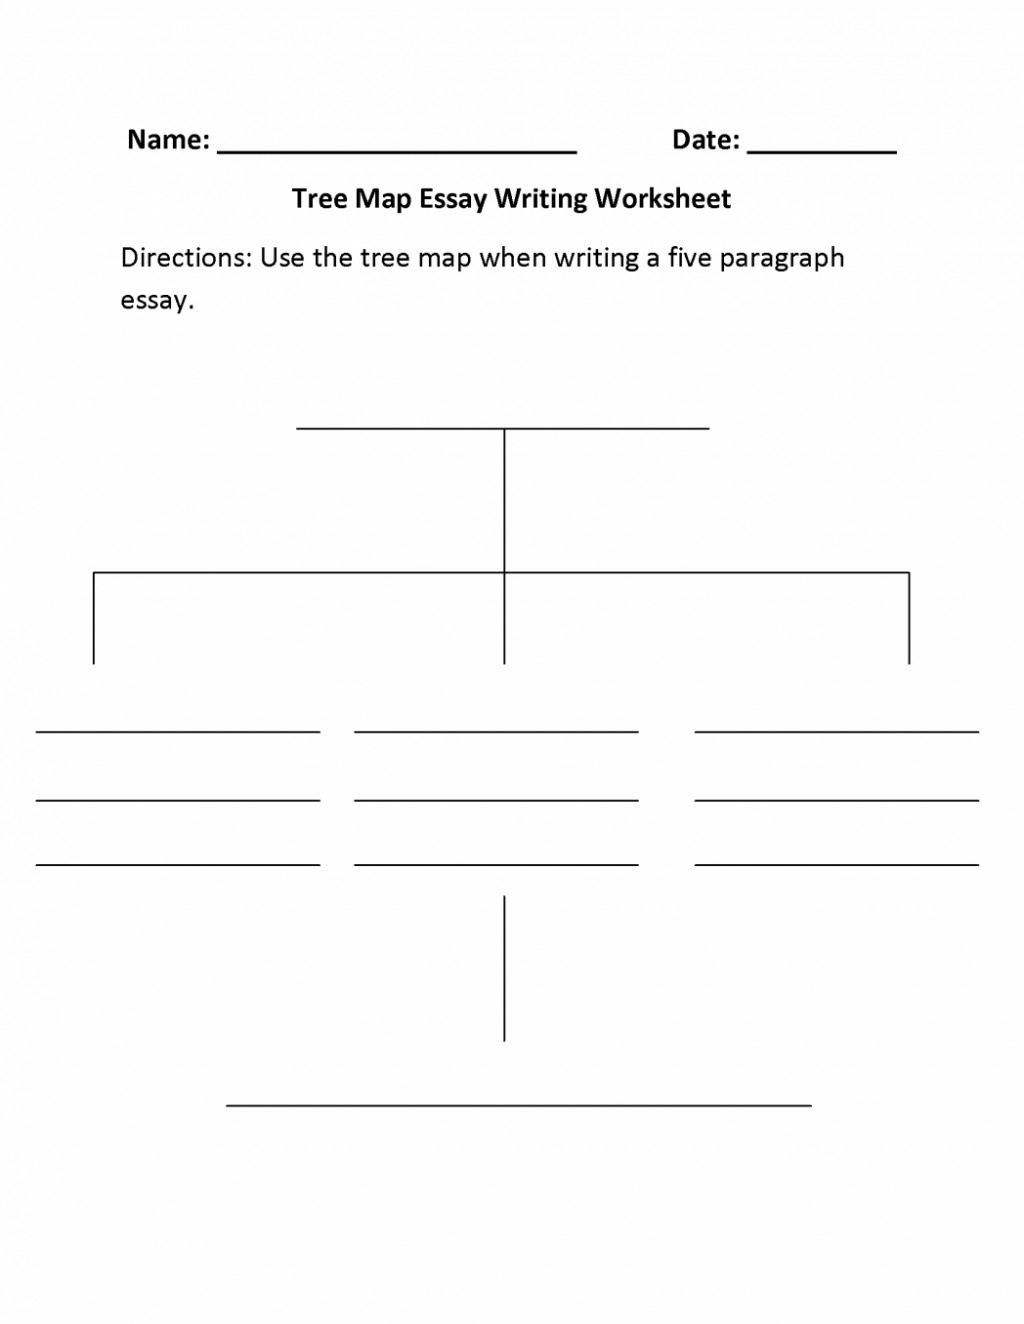 011 Essay Example Schizophrenia Essays On The Family And Free Writing Tools Tree Map Work Shocking Topics Conclusion Large